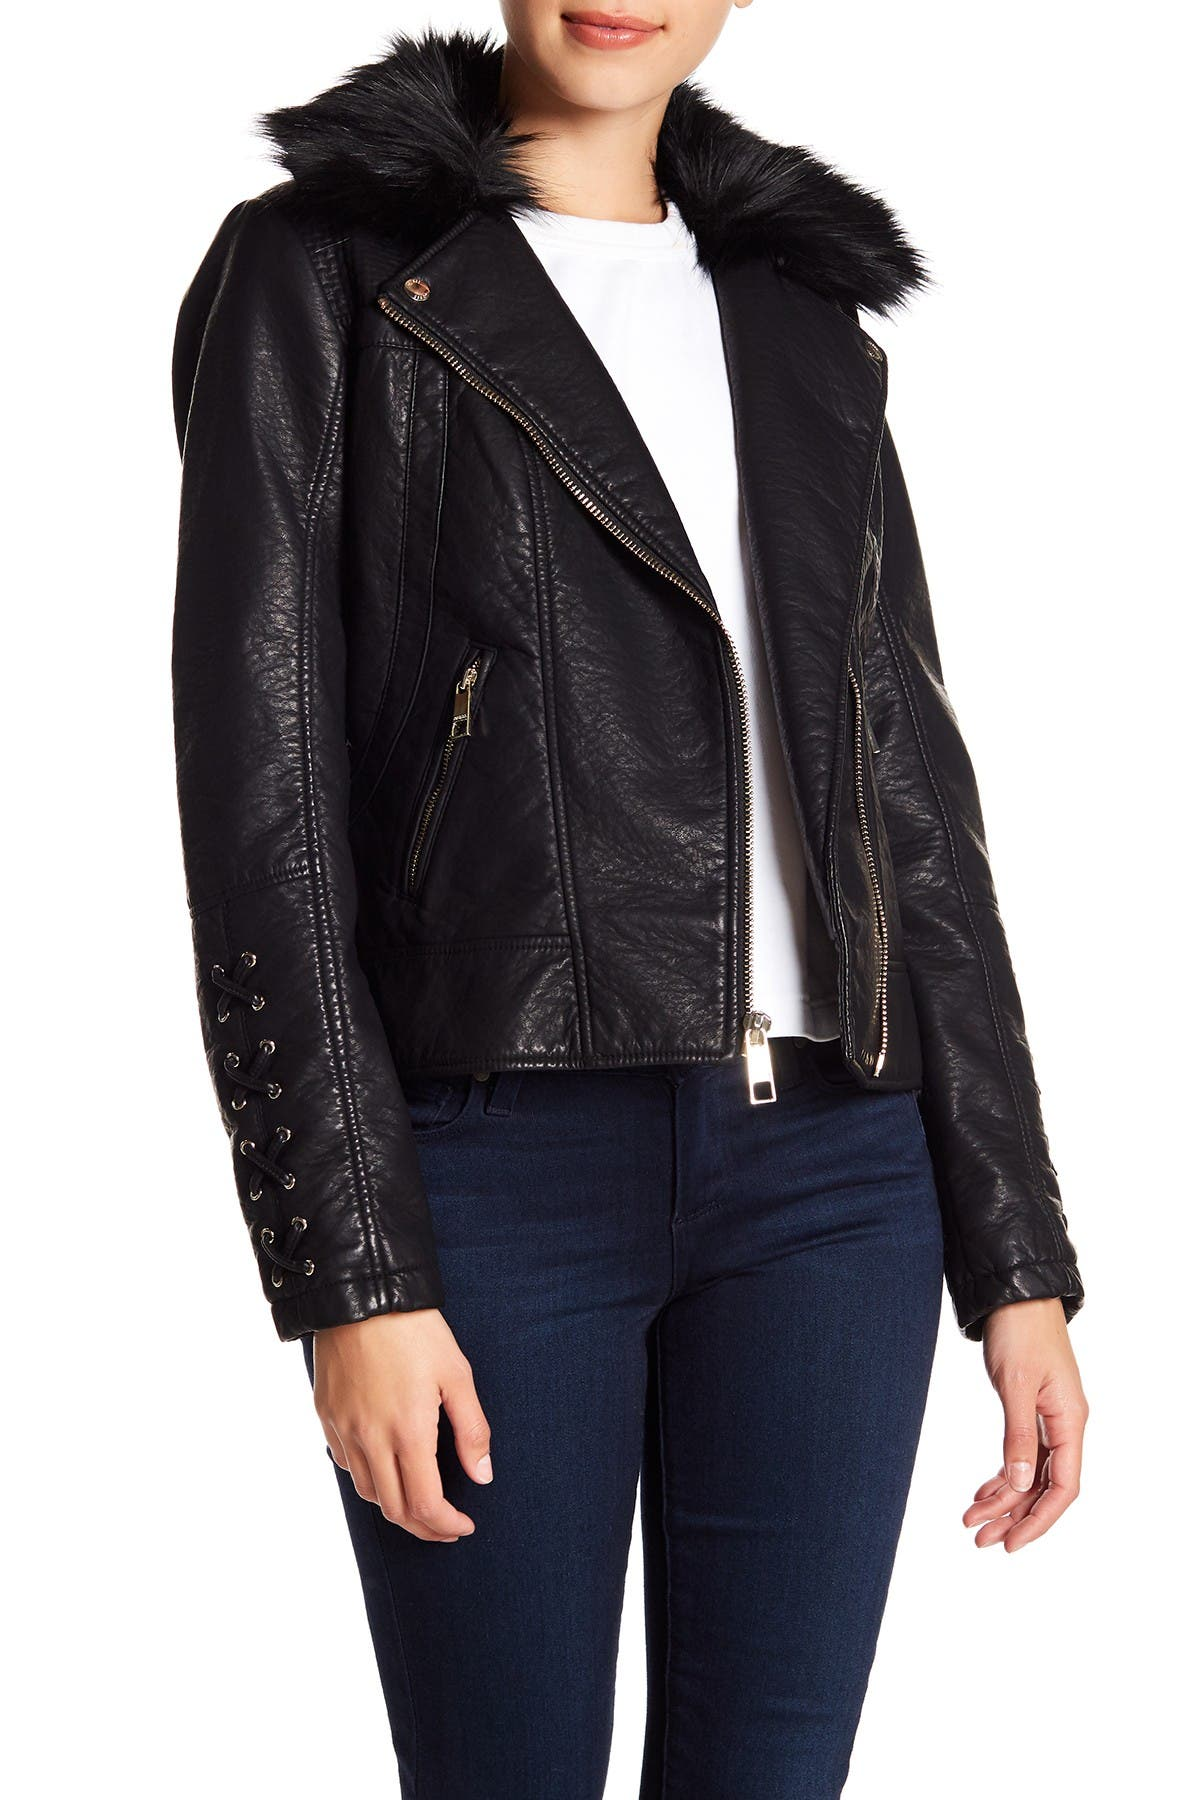 Image of GUESS Faux Fur & Leather Moto Jacket